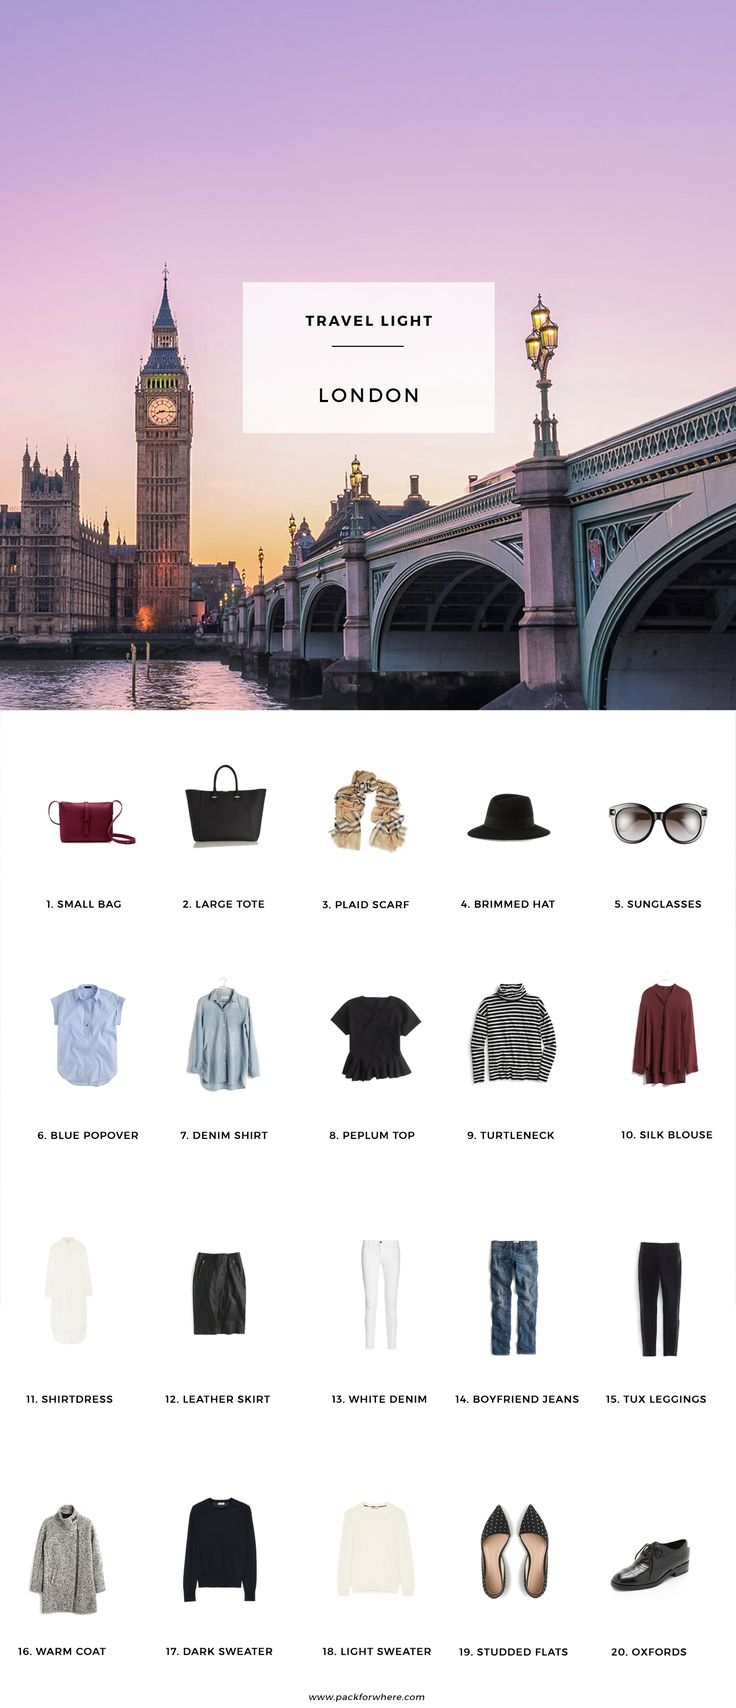 1000 ideas about winter travel outfit on pinterest for Family winter vacation ideas